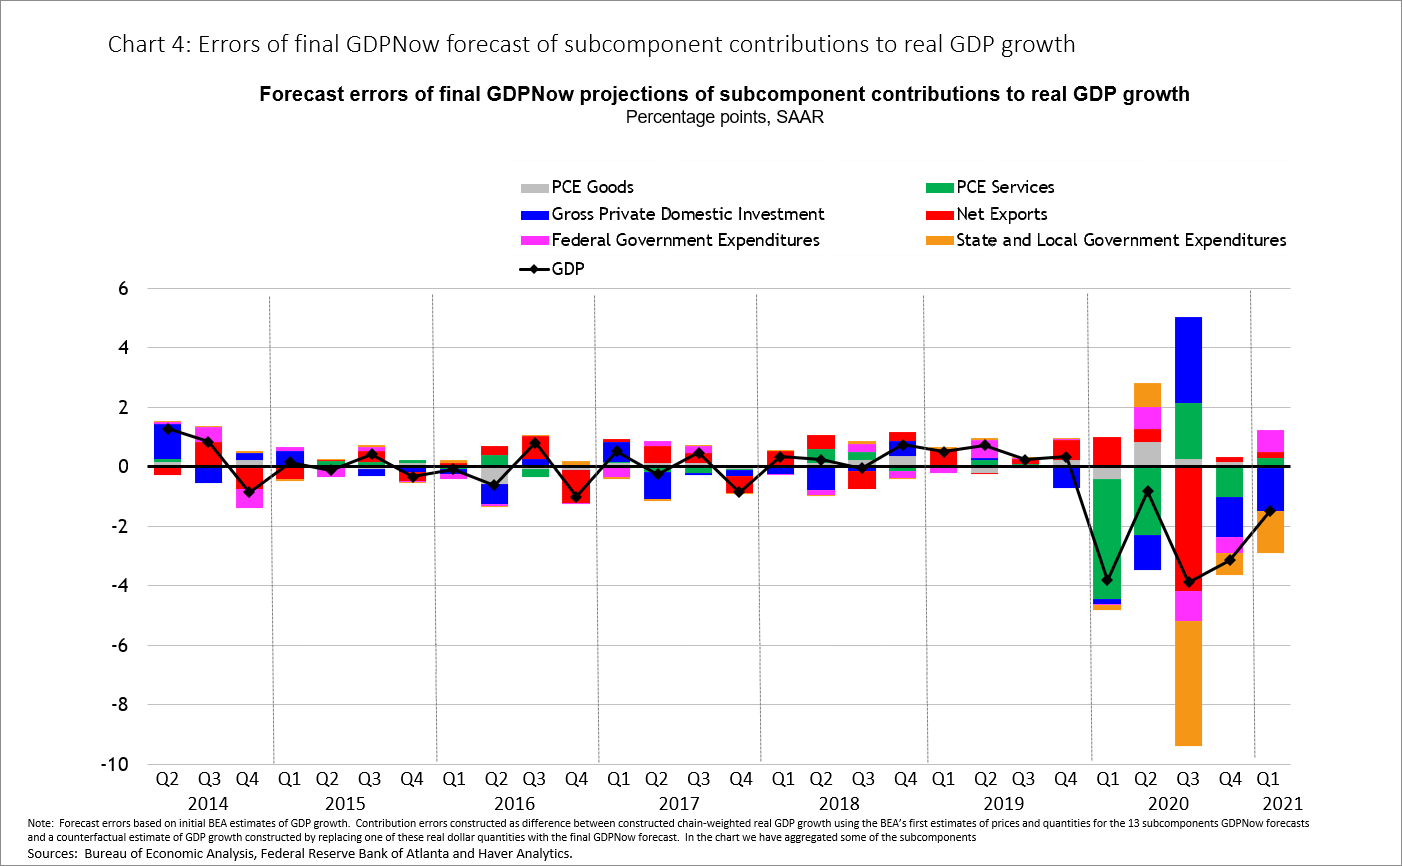 Chart 4: Errors of final GDPNow forecast of subcomponent contributions to real GDP growth